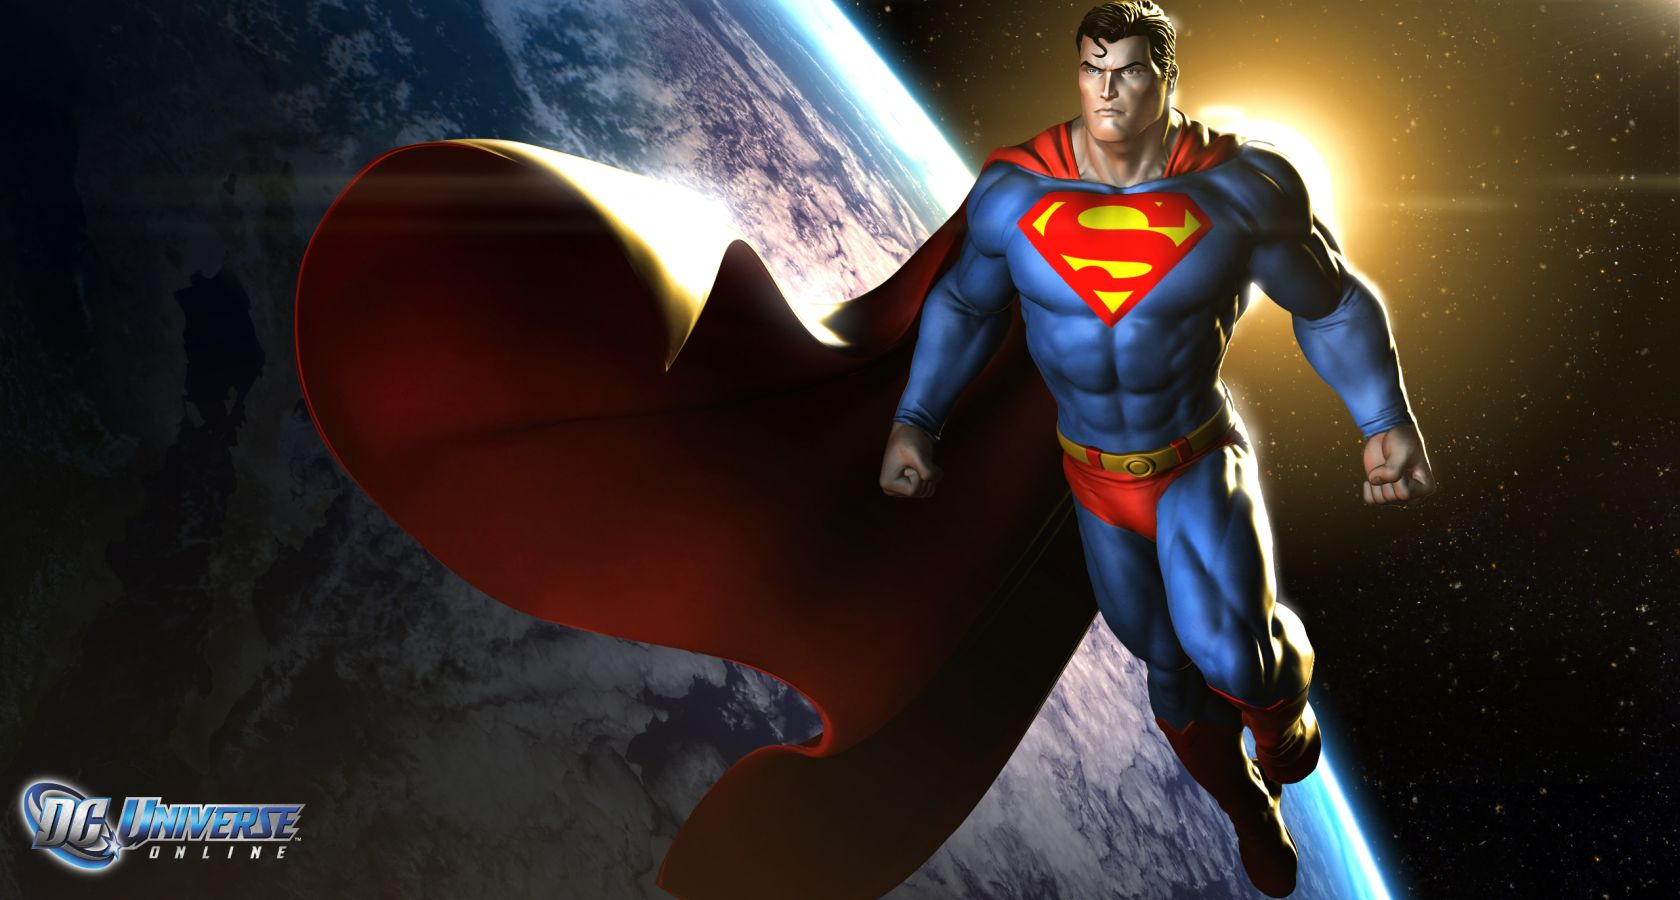 Superman 3D Wallpaper Wallpapers Gratis   Imagenes  Paisajes 1680x900